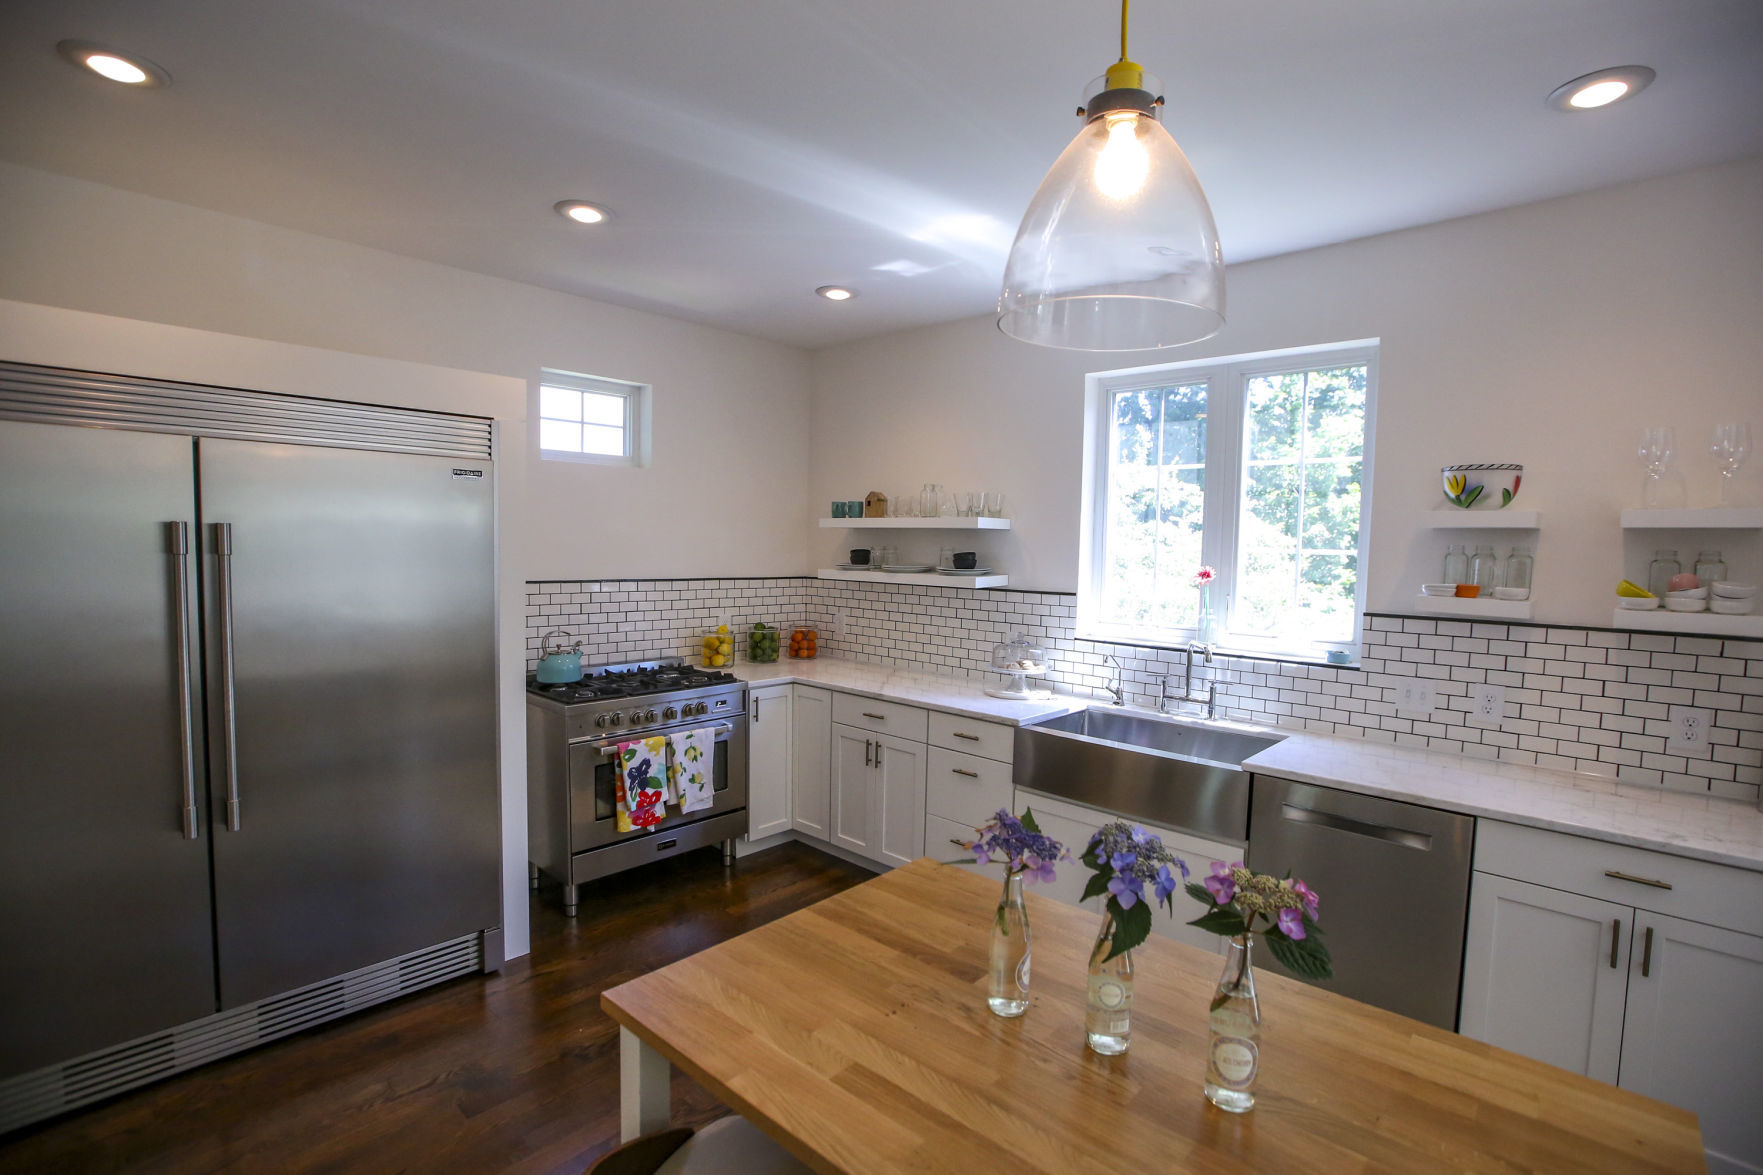 Kitchen And Bath Design Quad Cities New Home On East Locust Is Surprise In More Ways Than One Home And